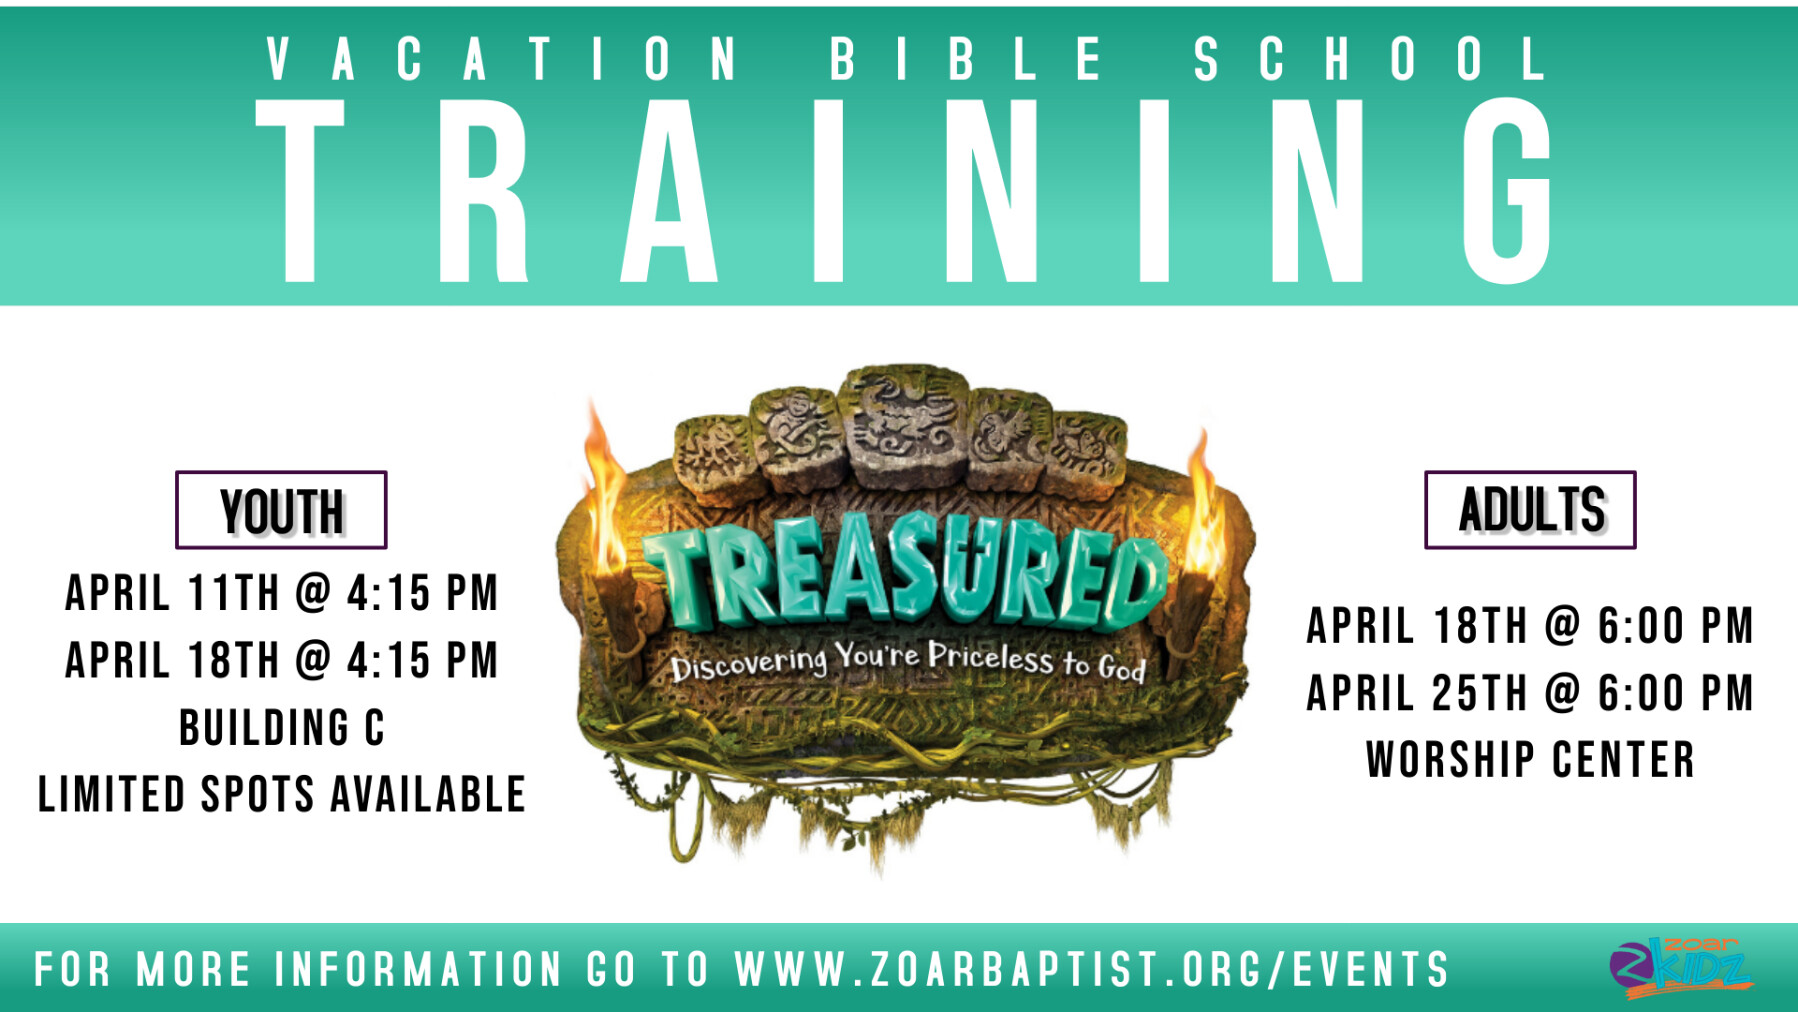 VBS Training - Adults FH